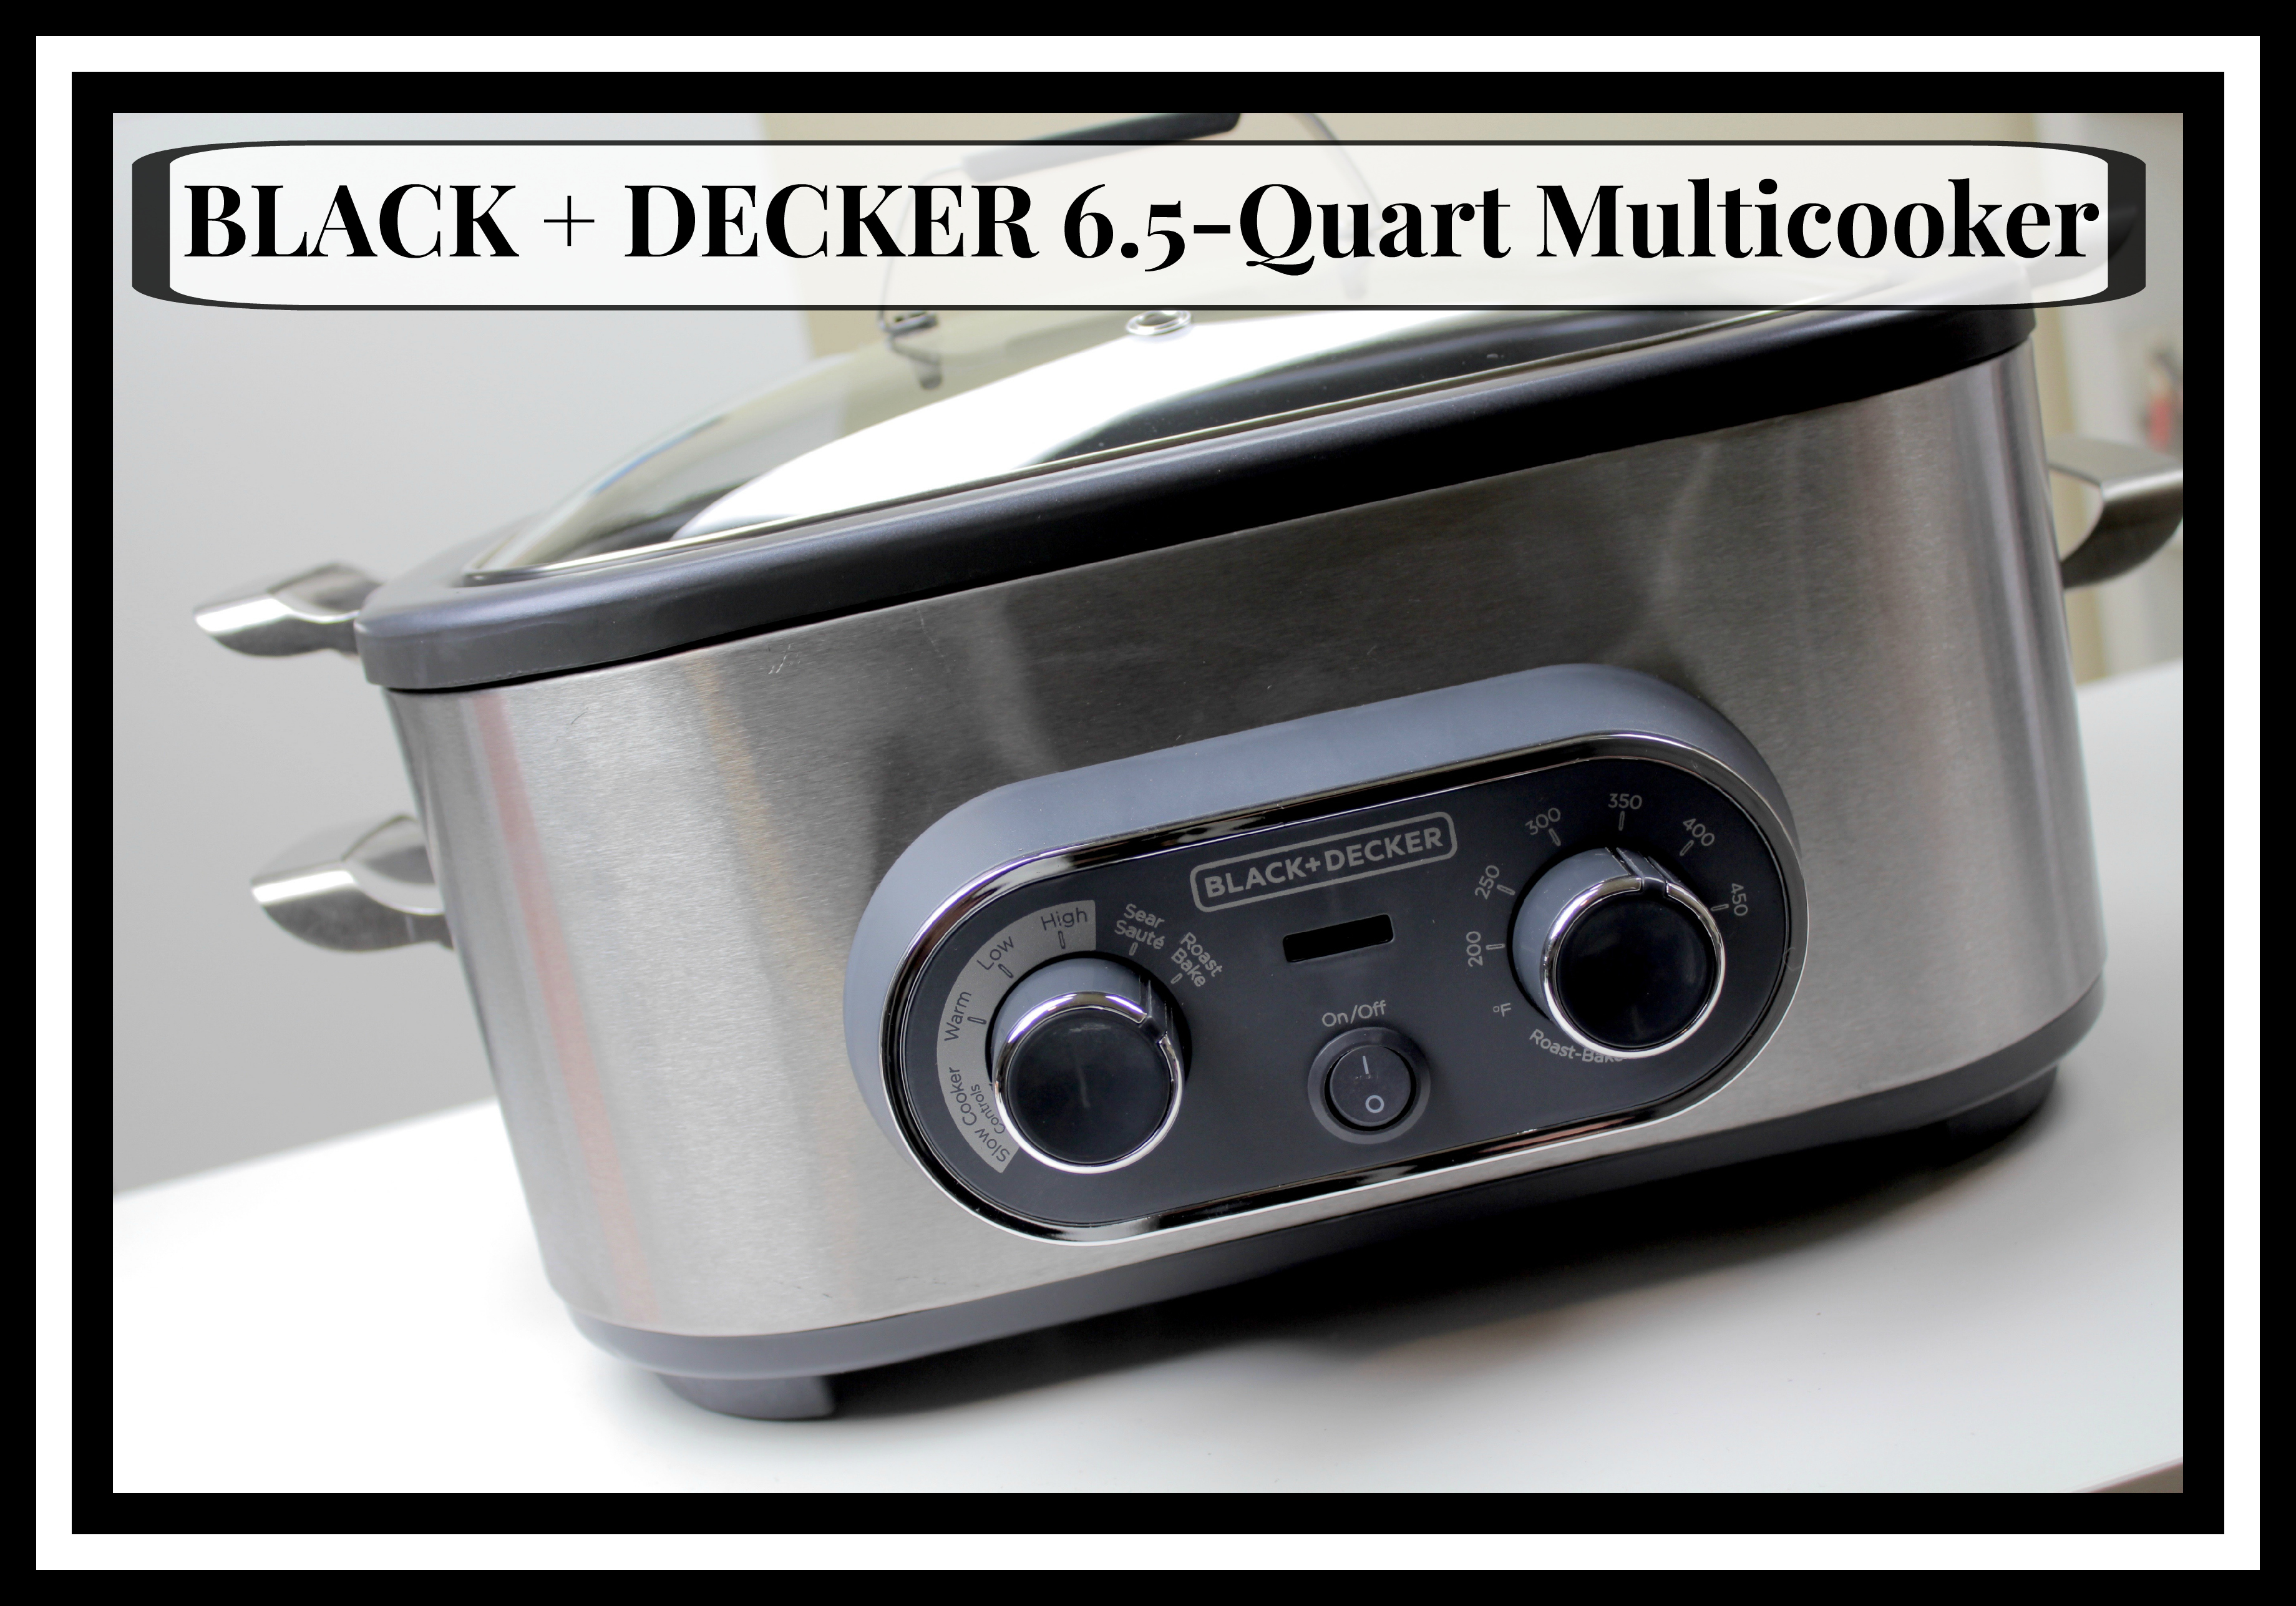 #BlackDecker #Home #FamilyFood #Recipe #ad